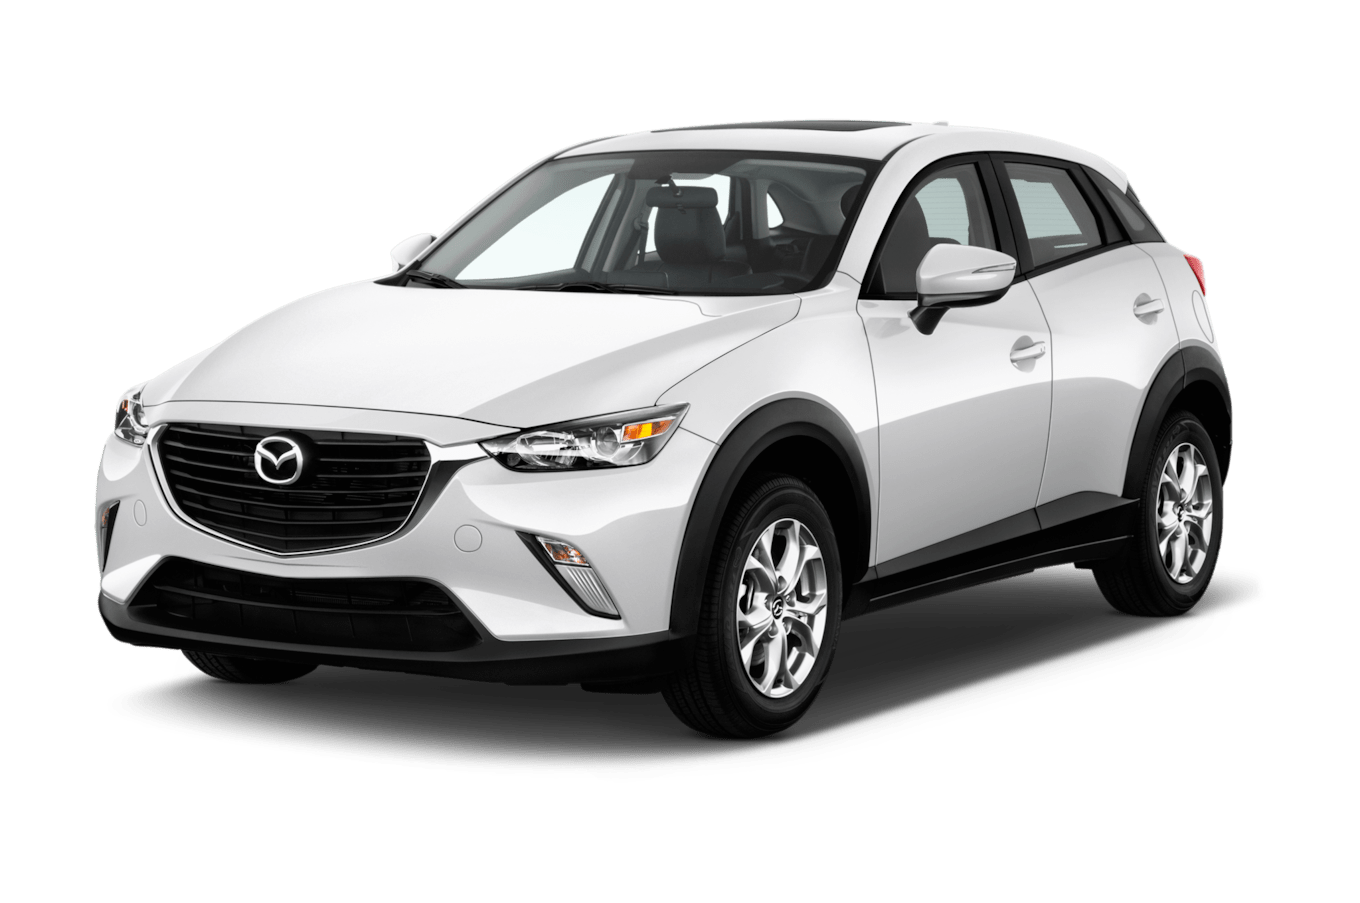 Mazda Cars Convertible Hatchback Sedan SUVCrossover